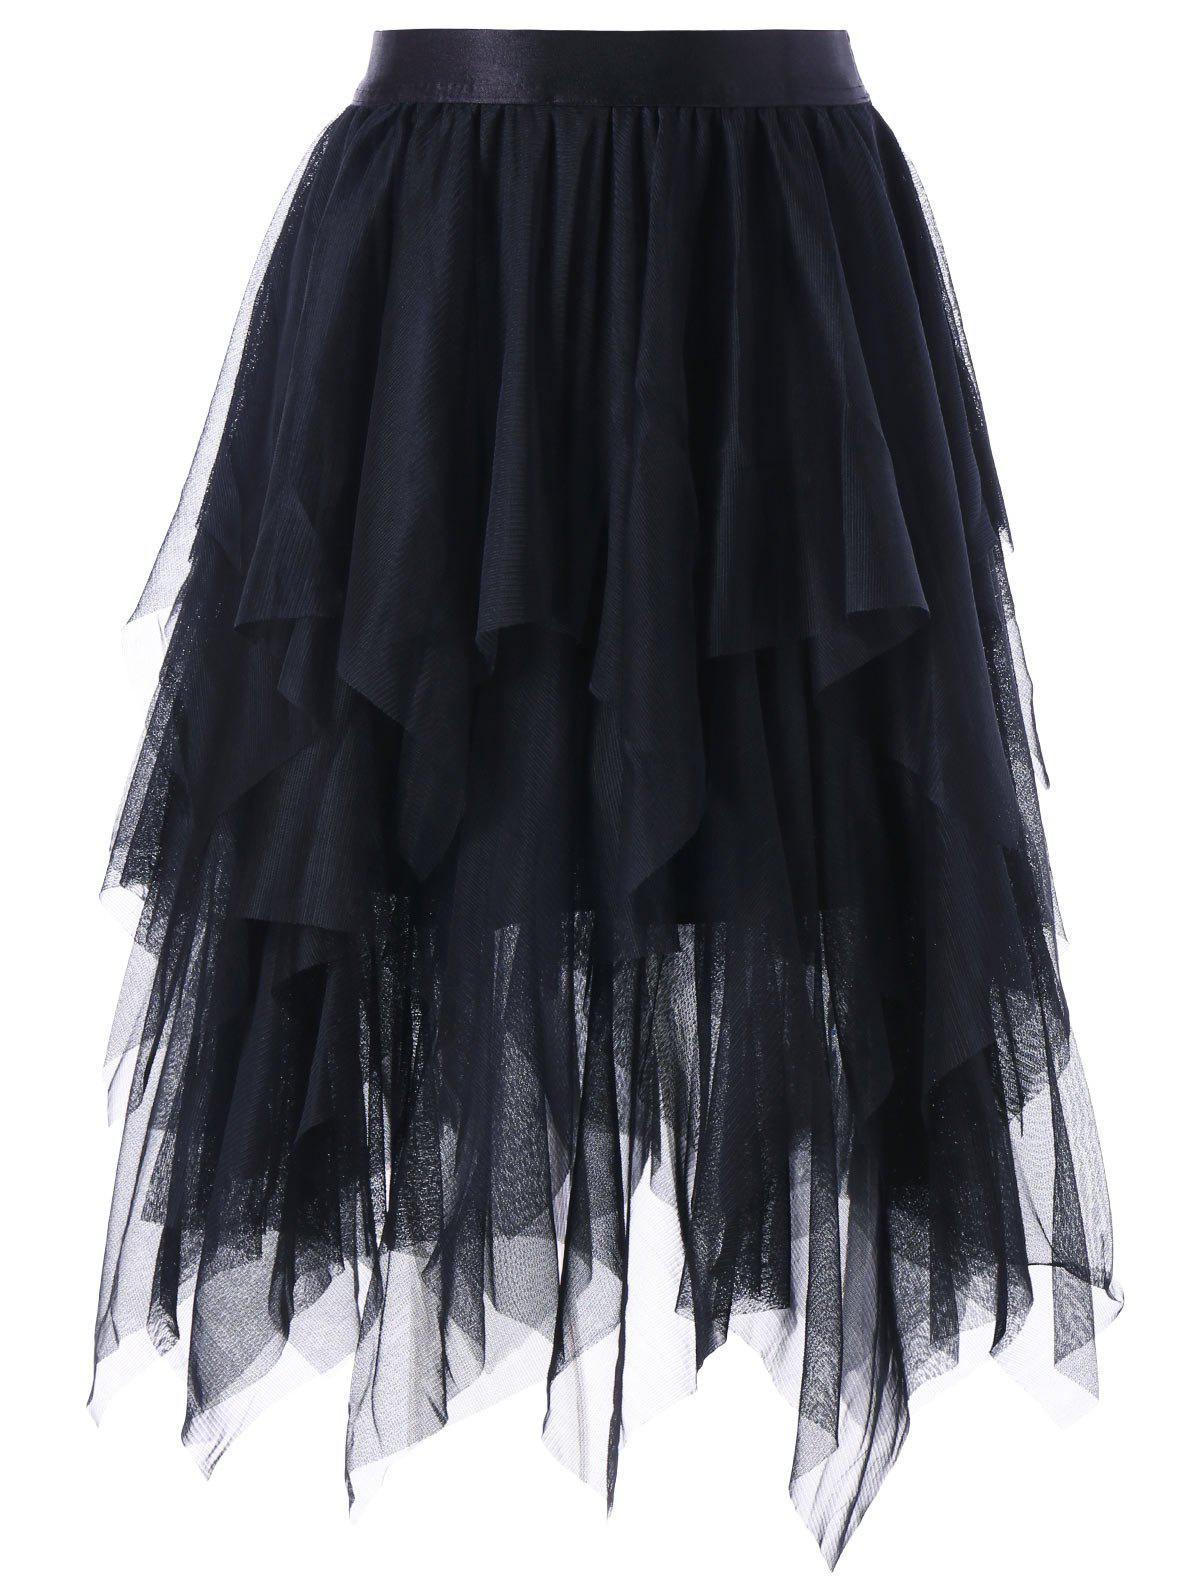 Asymmetrical Layered Tulle Skirt - BLACK M